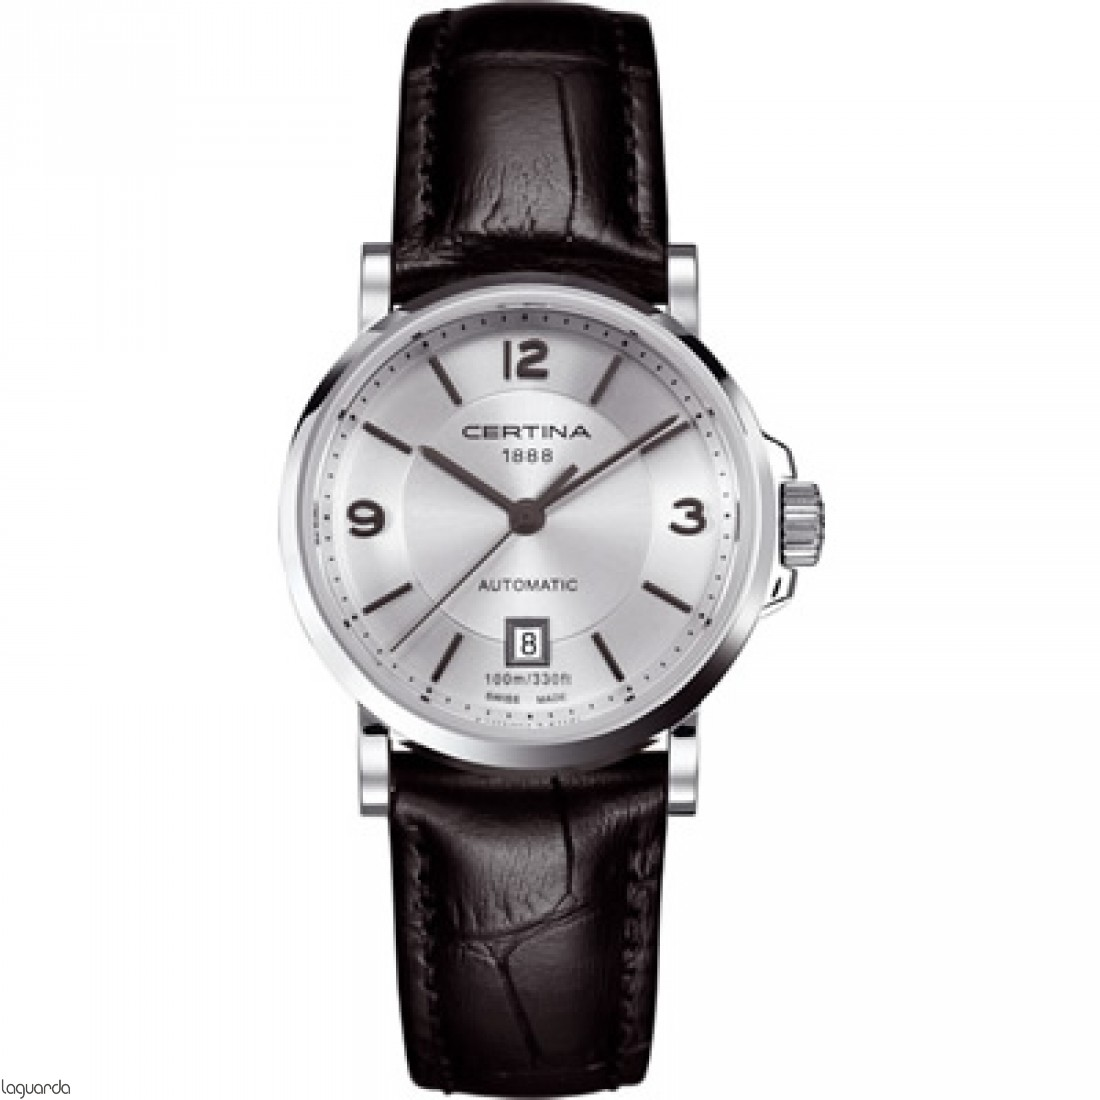 C017.210.16.037.00 Certina DS Caimano Lady Automatic Laguarda Joiers.com